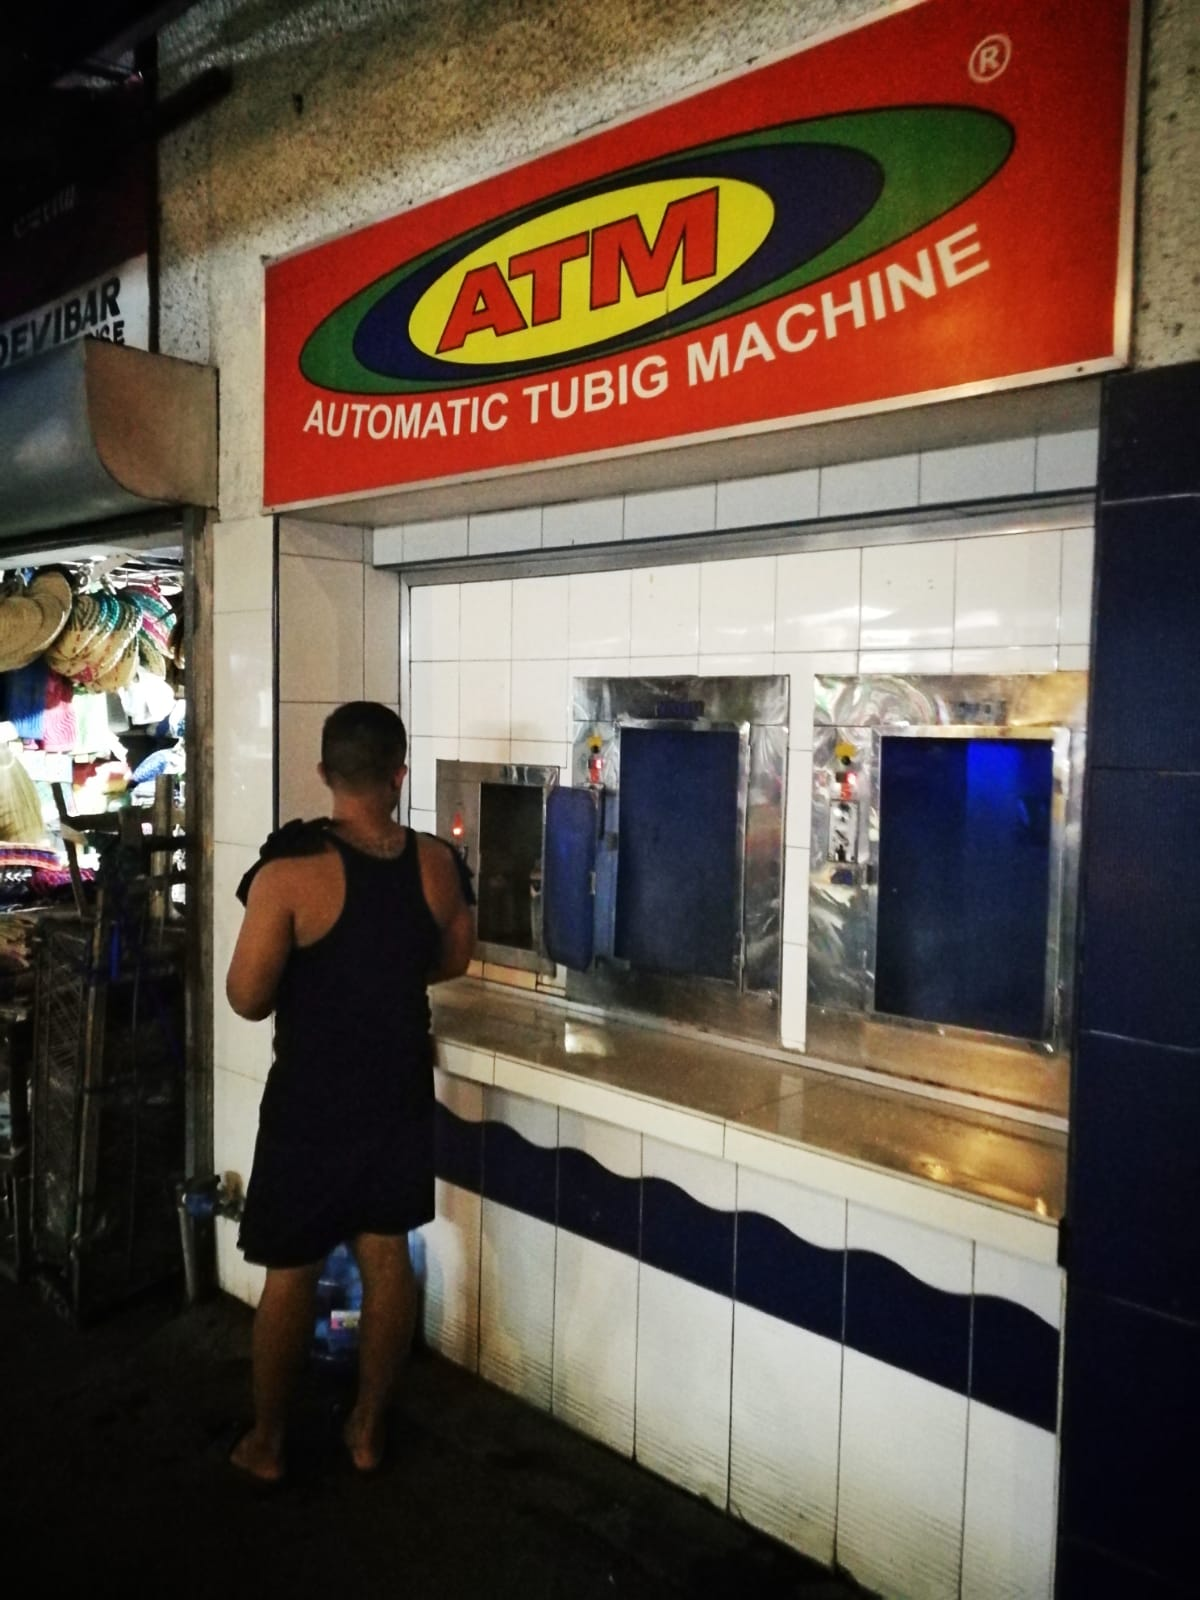 Automatic tubig machine